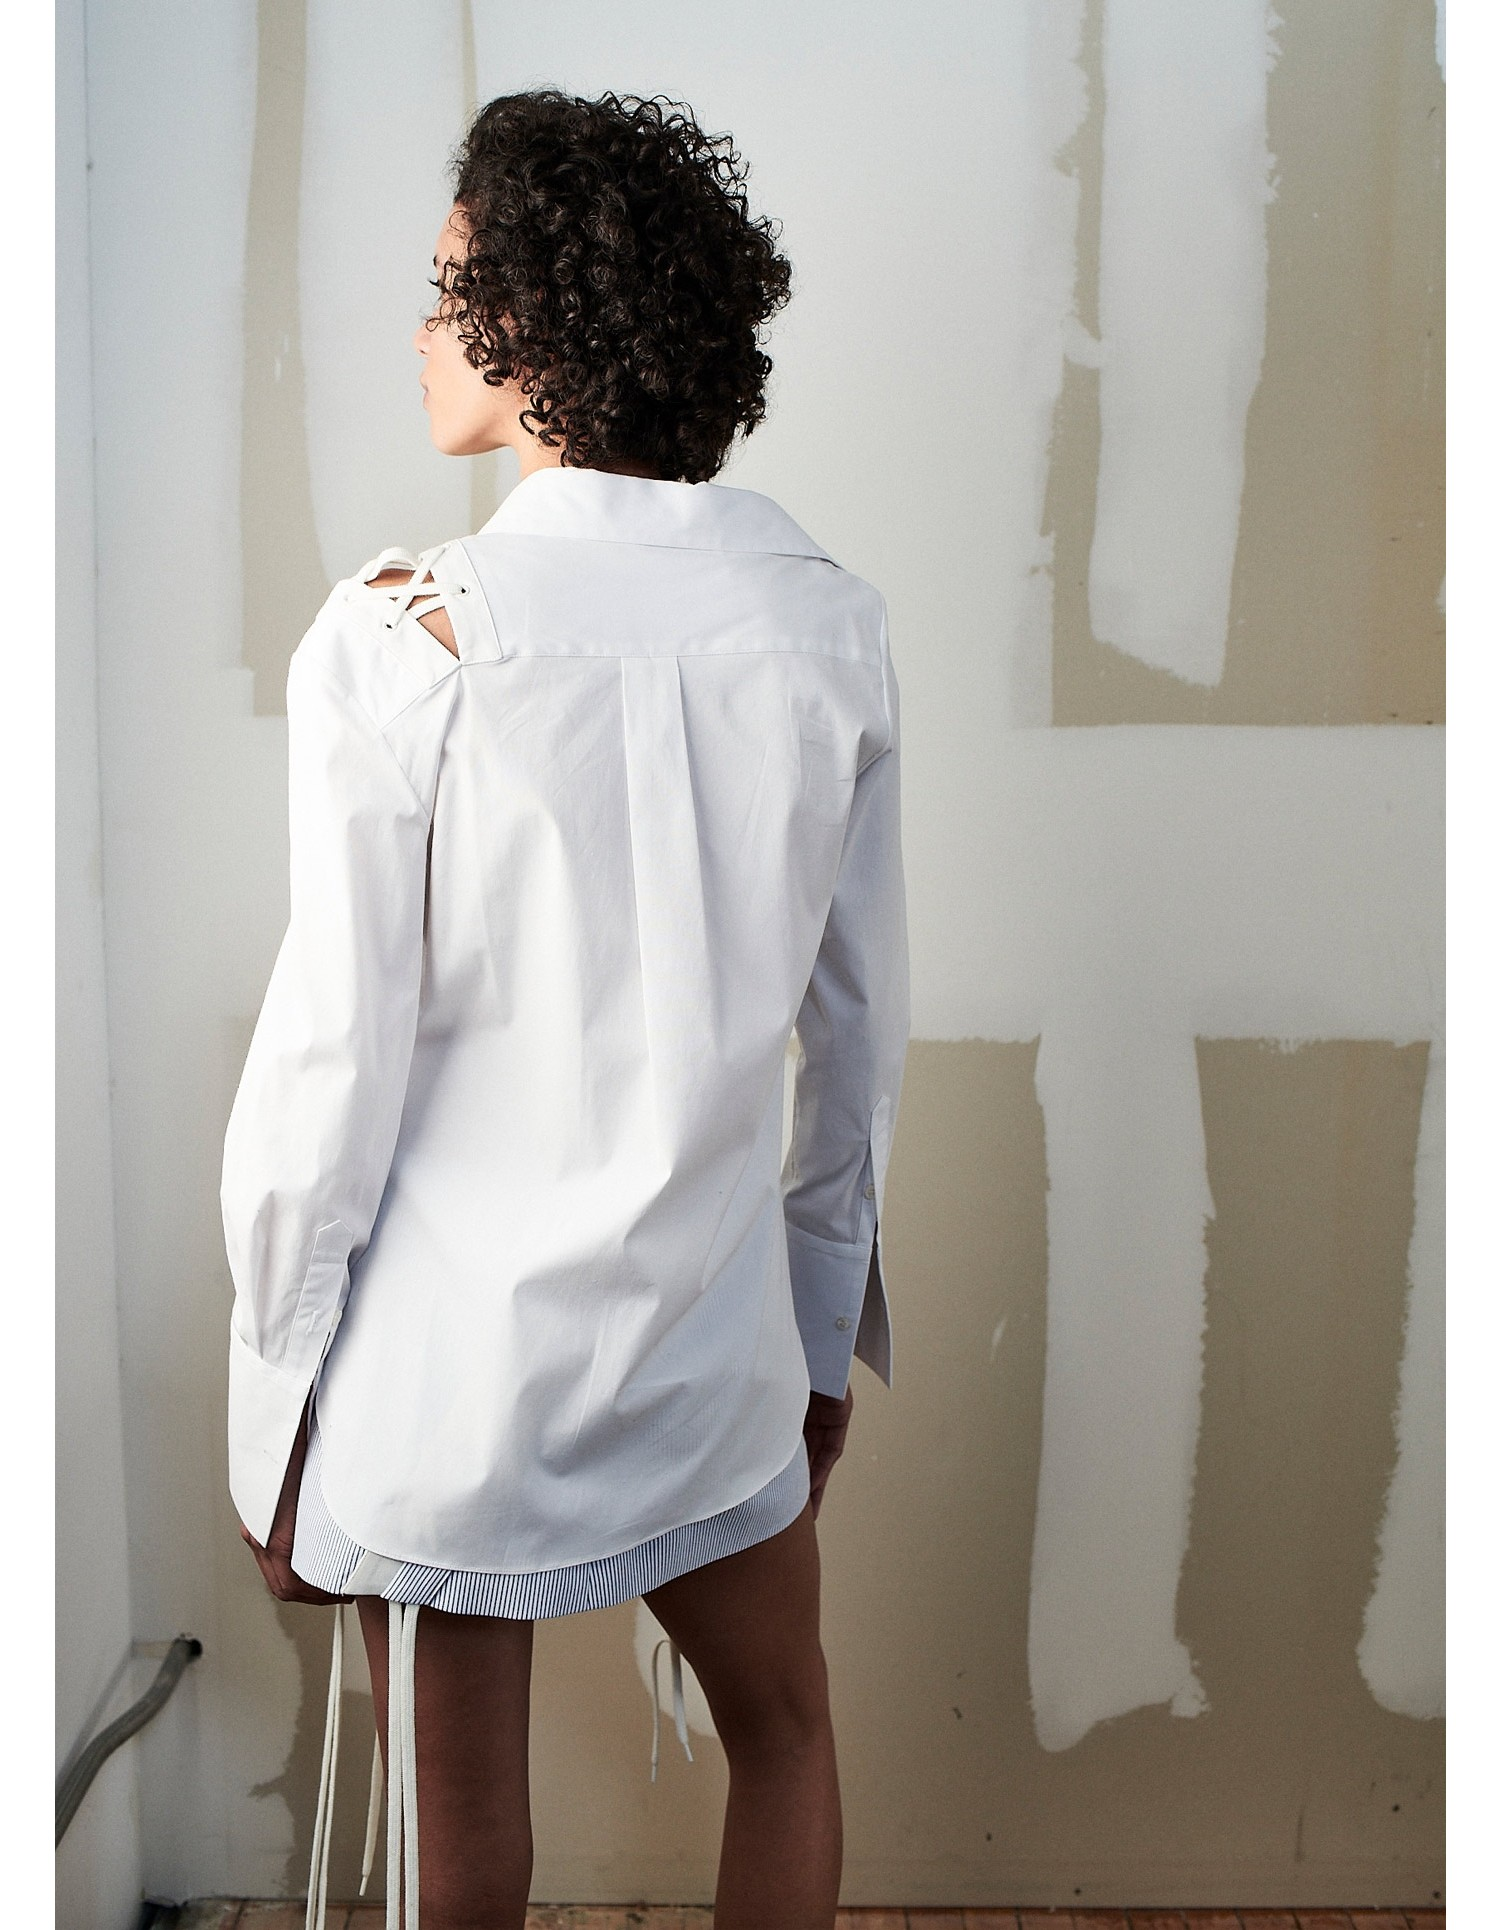 MONSE Crooked Lace Up Shirt on Model Back View